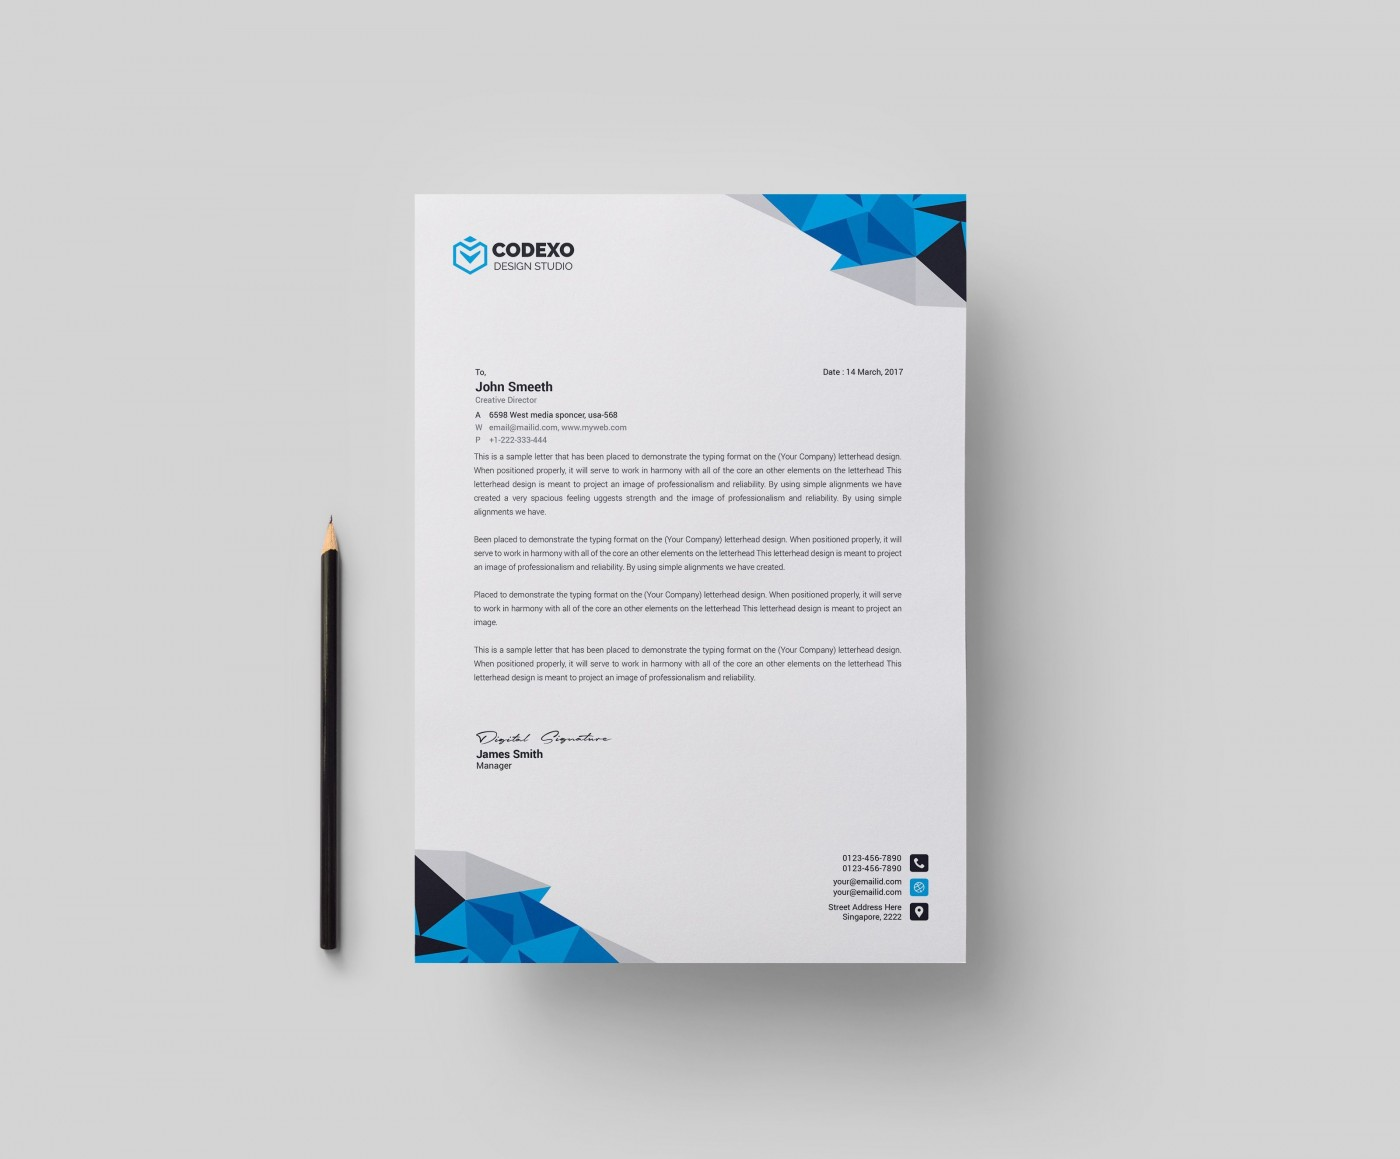 002 Impressive Letterhead Template Free Download Ai Picture  File1400